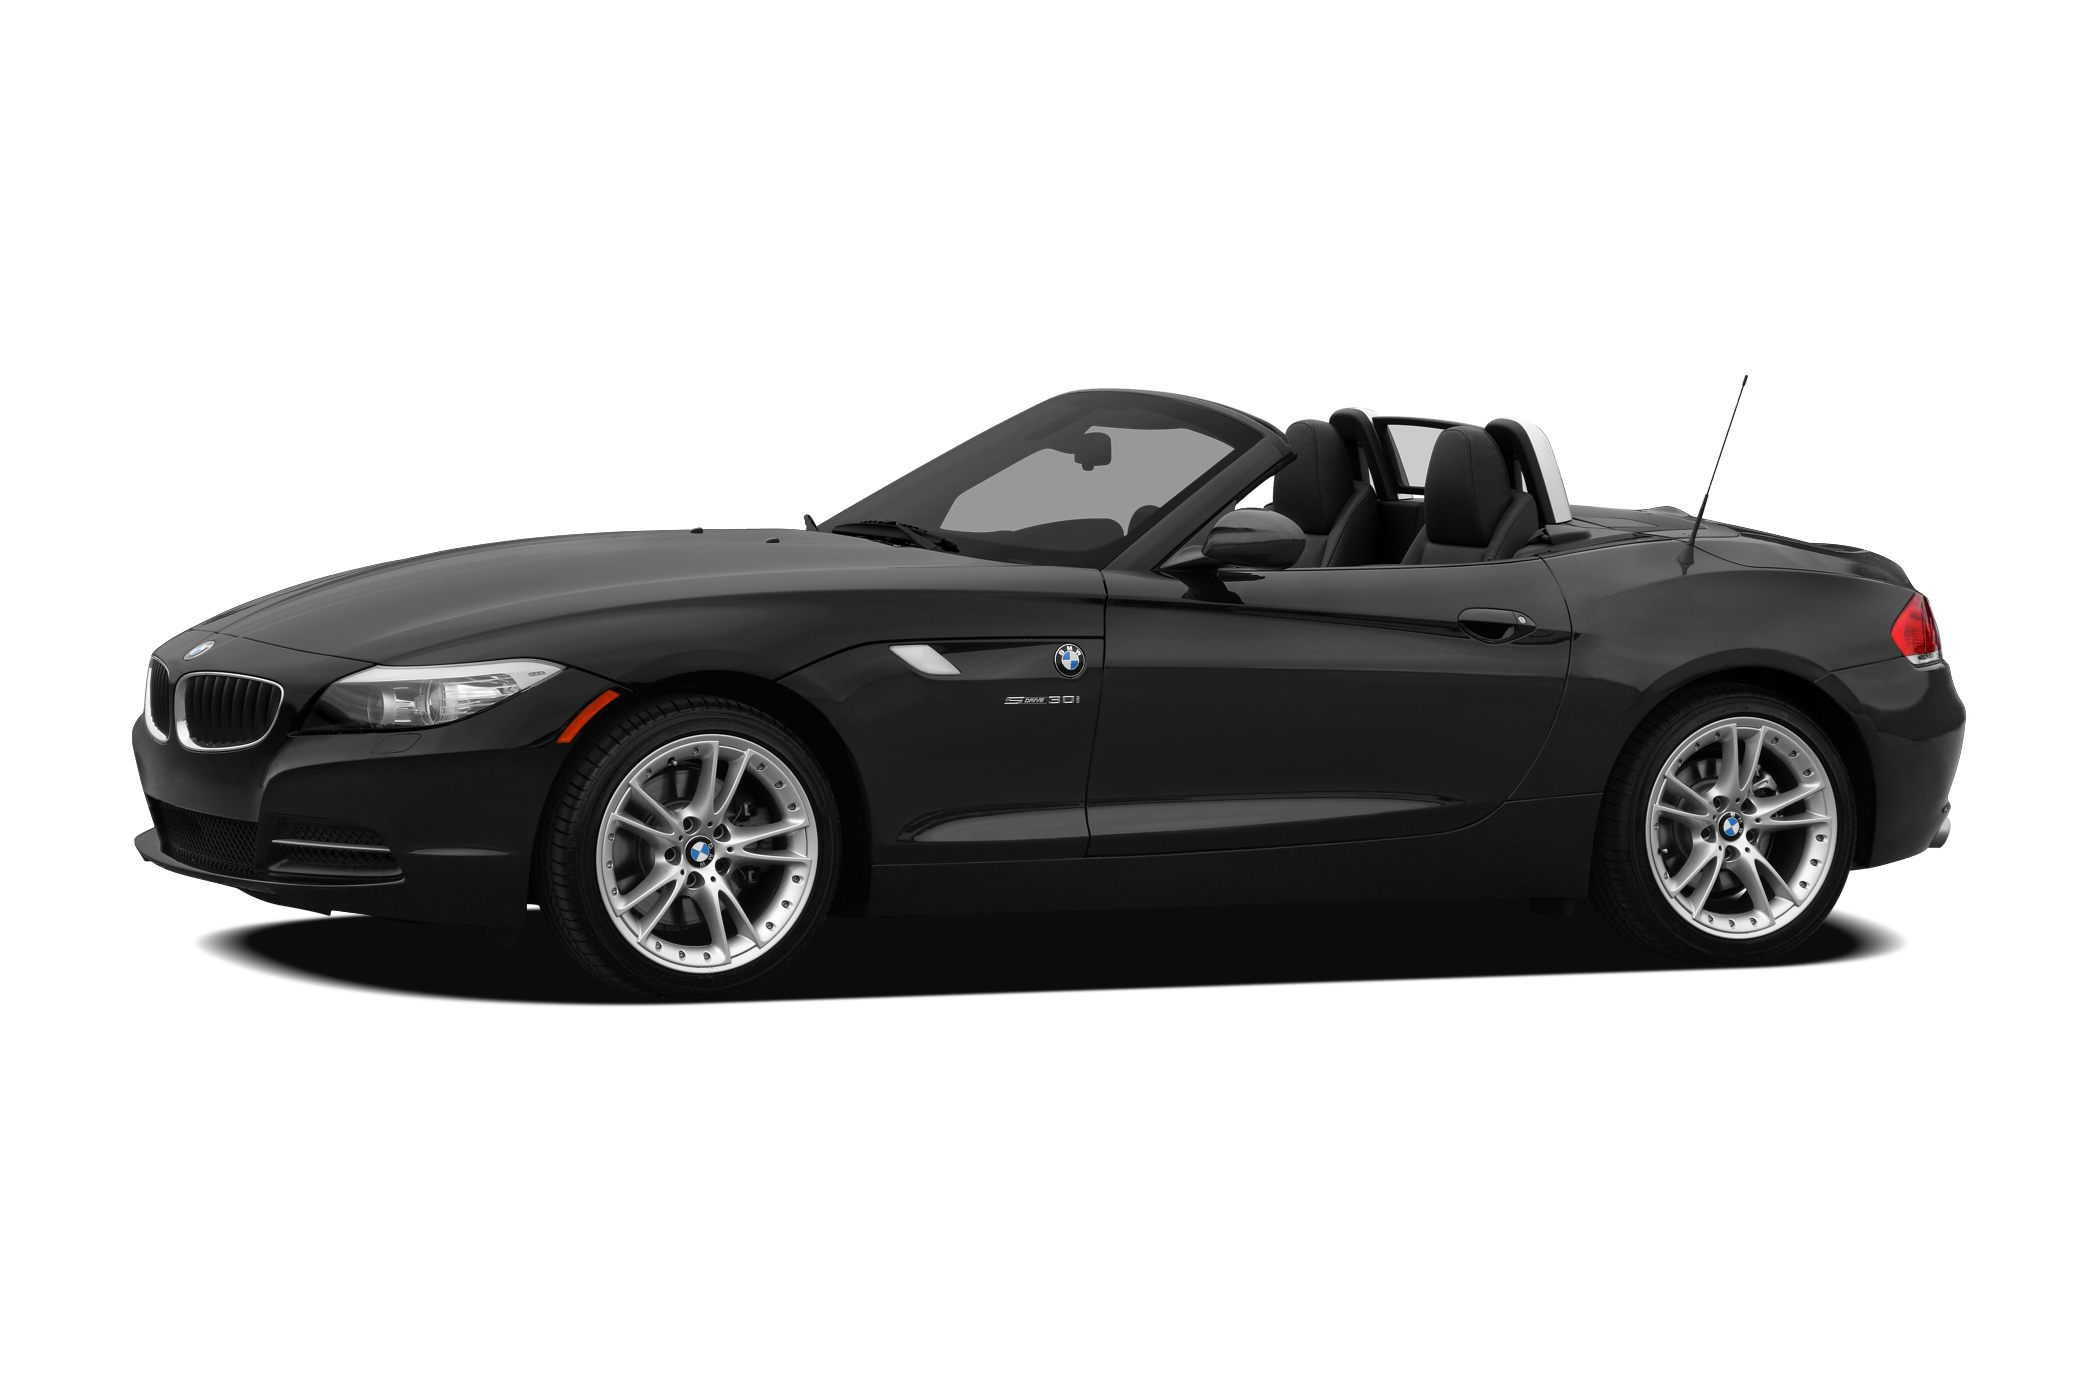 2012 BMW Z4 SDrive28i Convertible for sale in Charlotte for $39,409 with 13,537 miles.